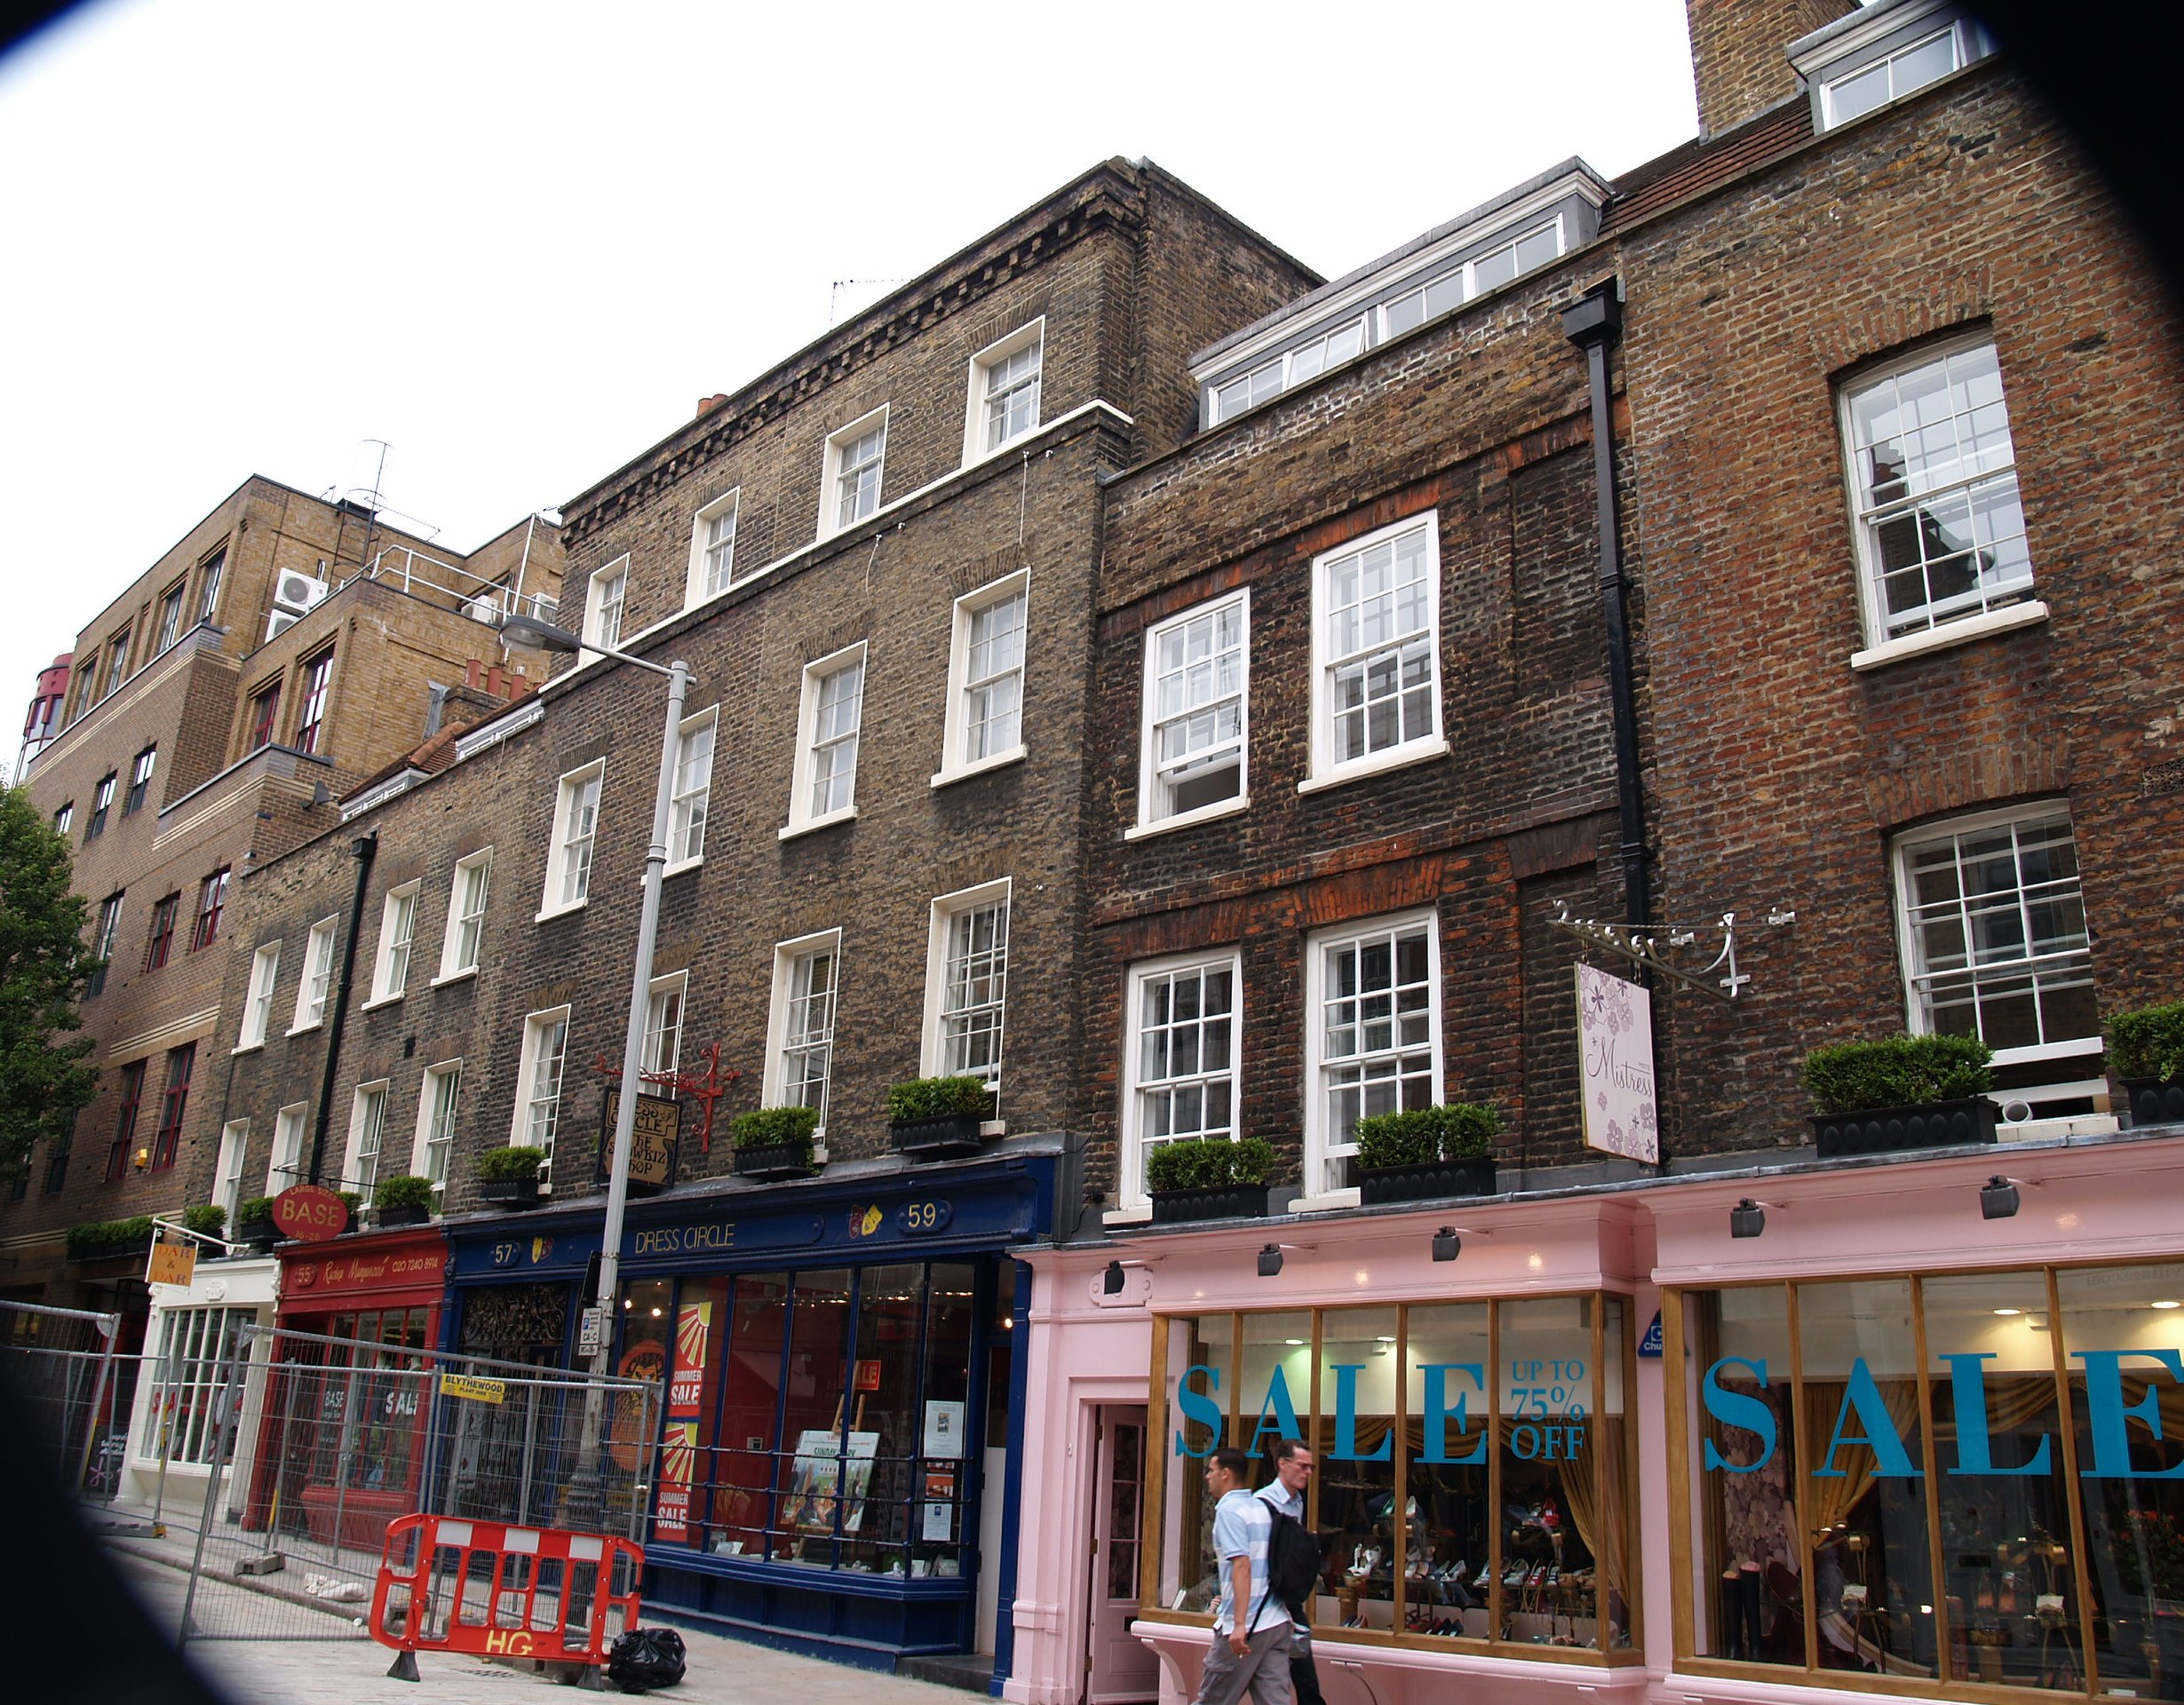 P&O Properties proposed demolition of this section of Monmouth Street (South), but the application was defeated at appeal and new owners Shaftesbury PLC restored the facades in line with the recommendations of the Seven Dials Renaissance Study. See Planning Appeals.